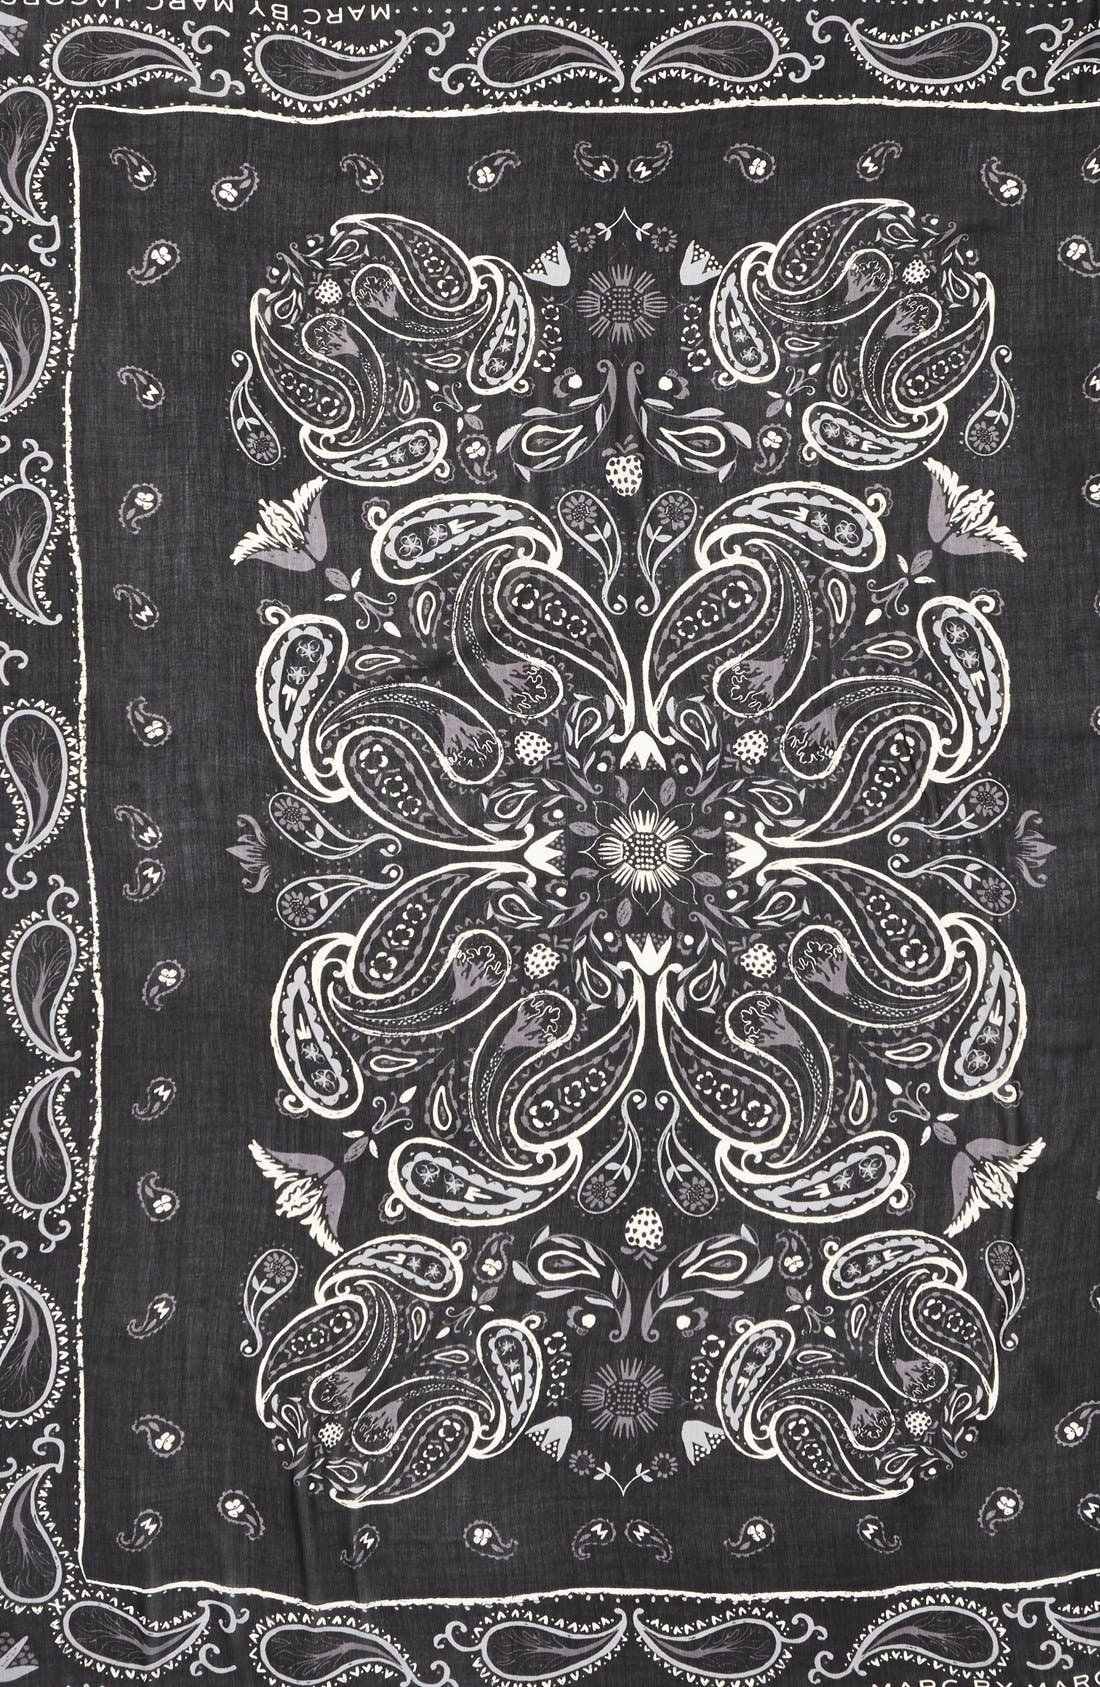 MARC JACOBS, MARC BY MARC JACOBS 'William' Paisley PrintScarf, Alternate thumbnail 2, color, 001